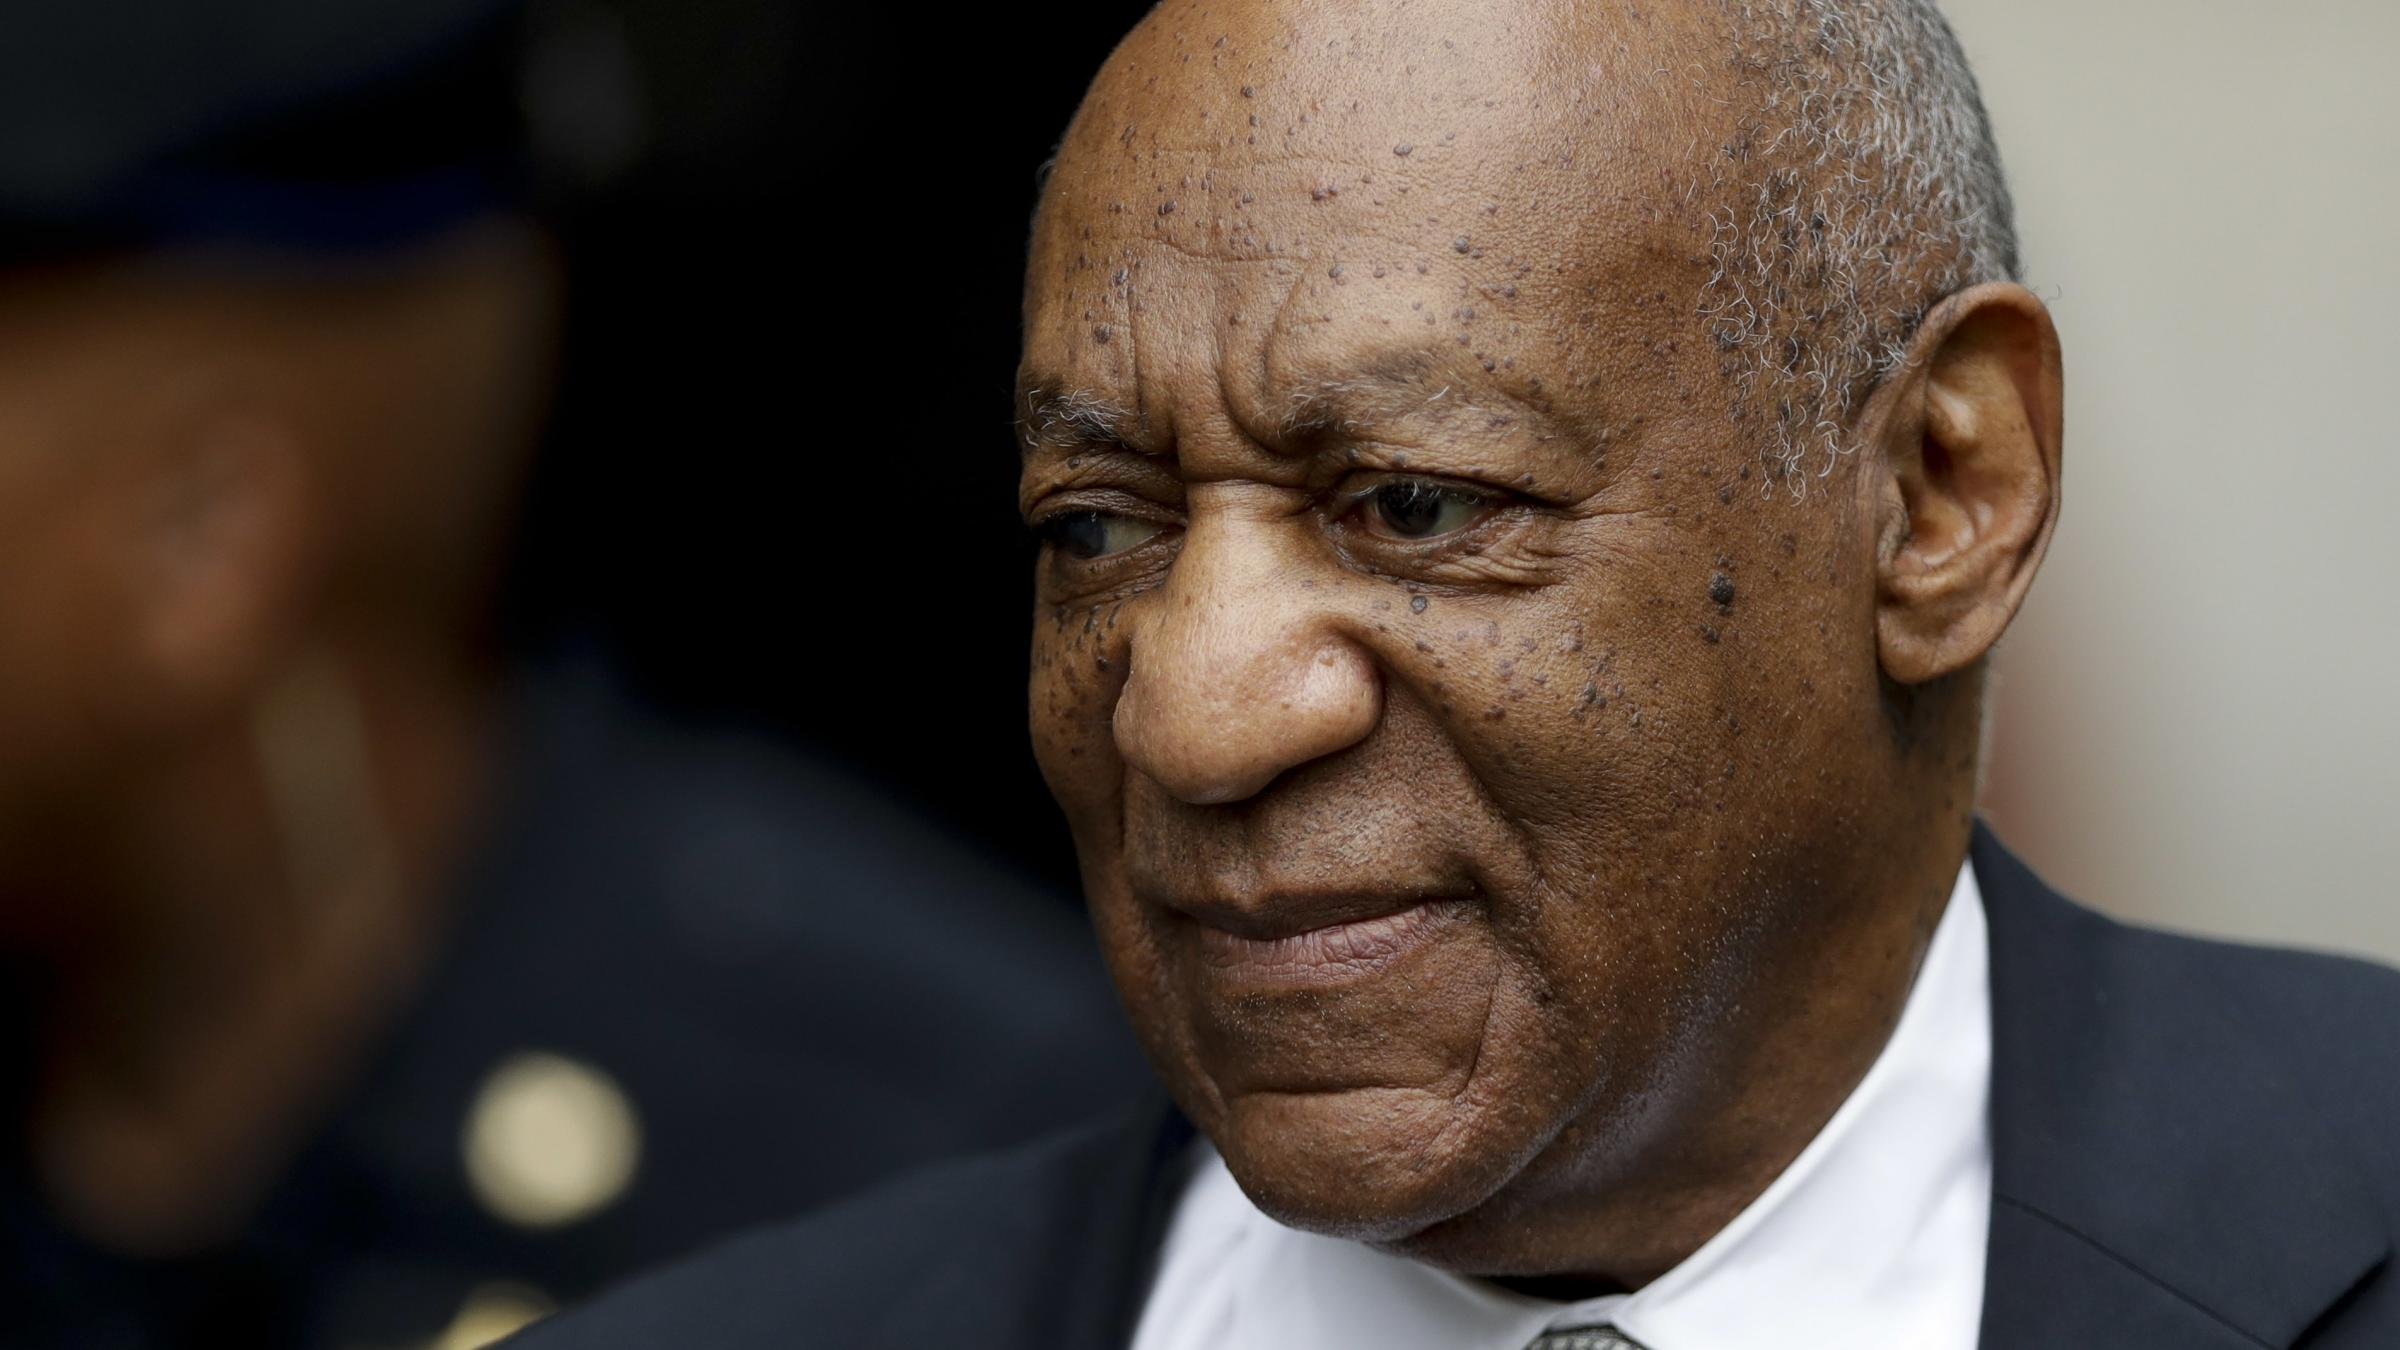 HUNG JURY: Jurors unable to reach verdict in Cosby sex assault trial